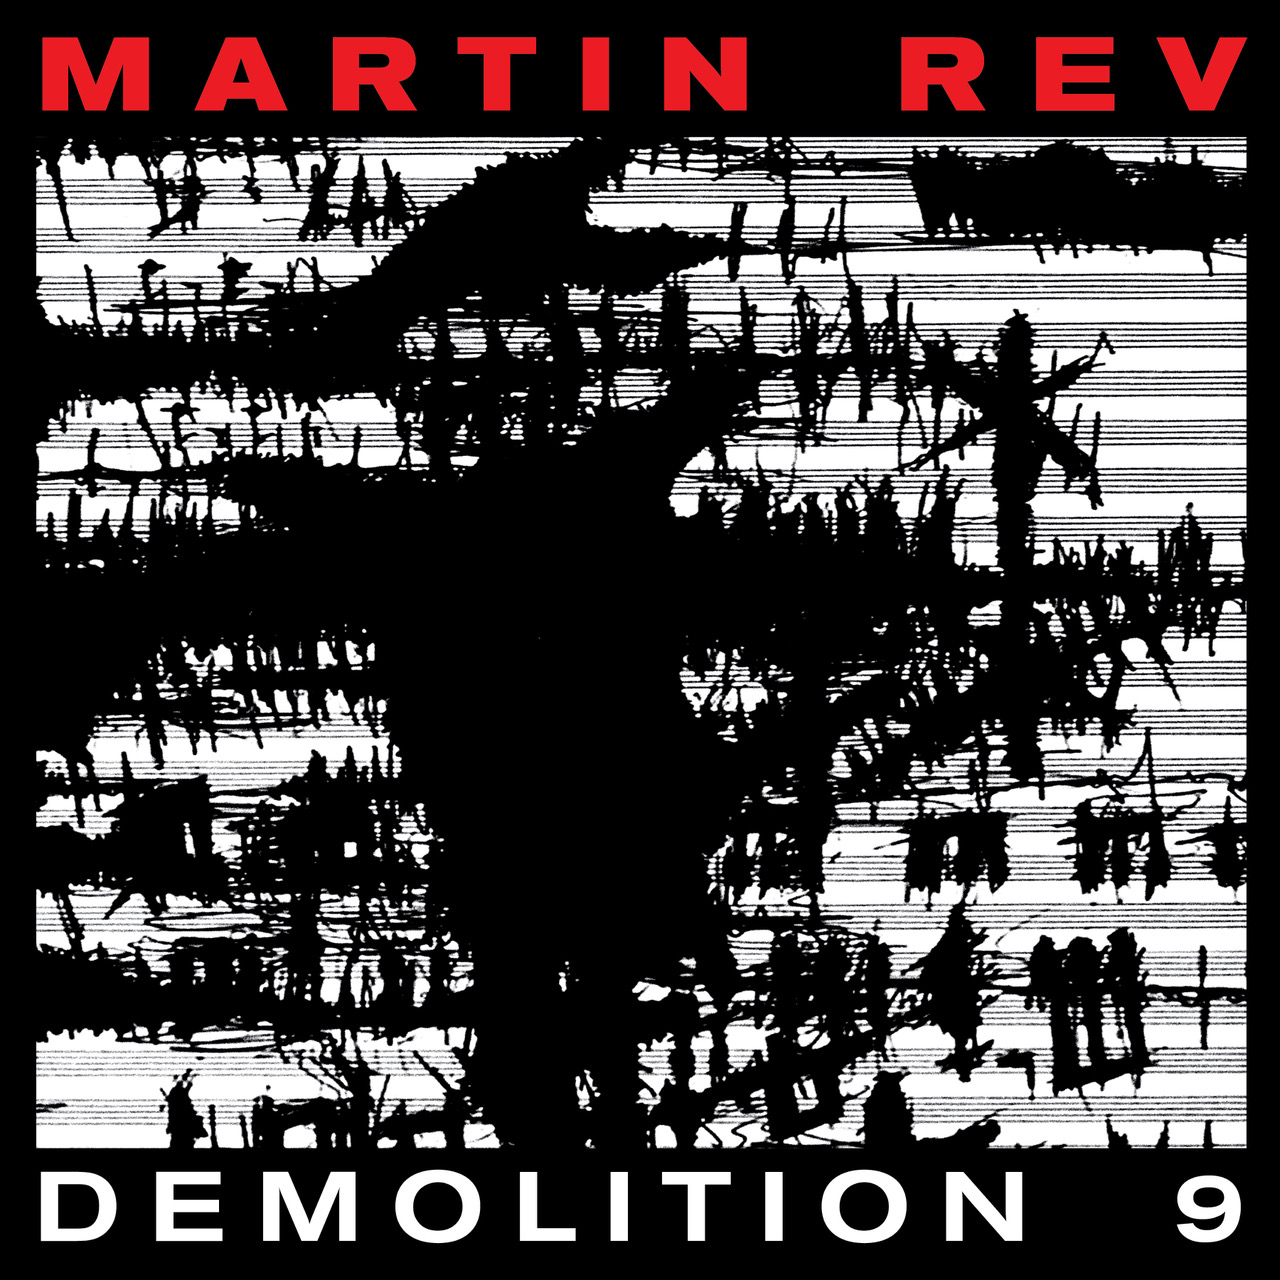 Martin Rev new album Demolition 9